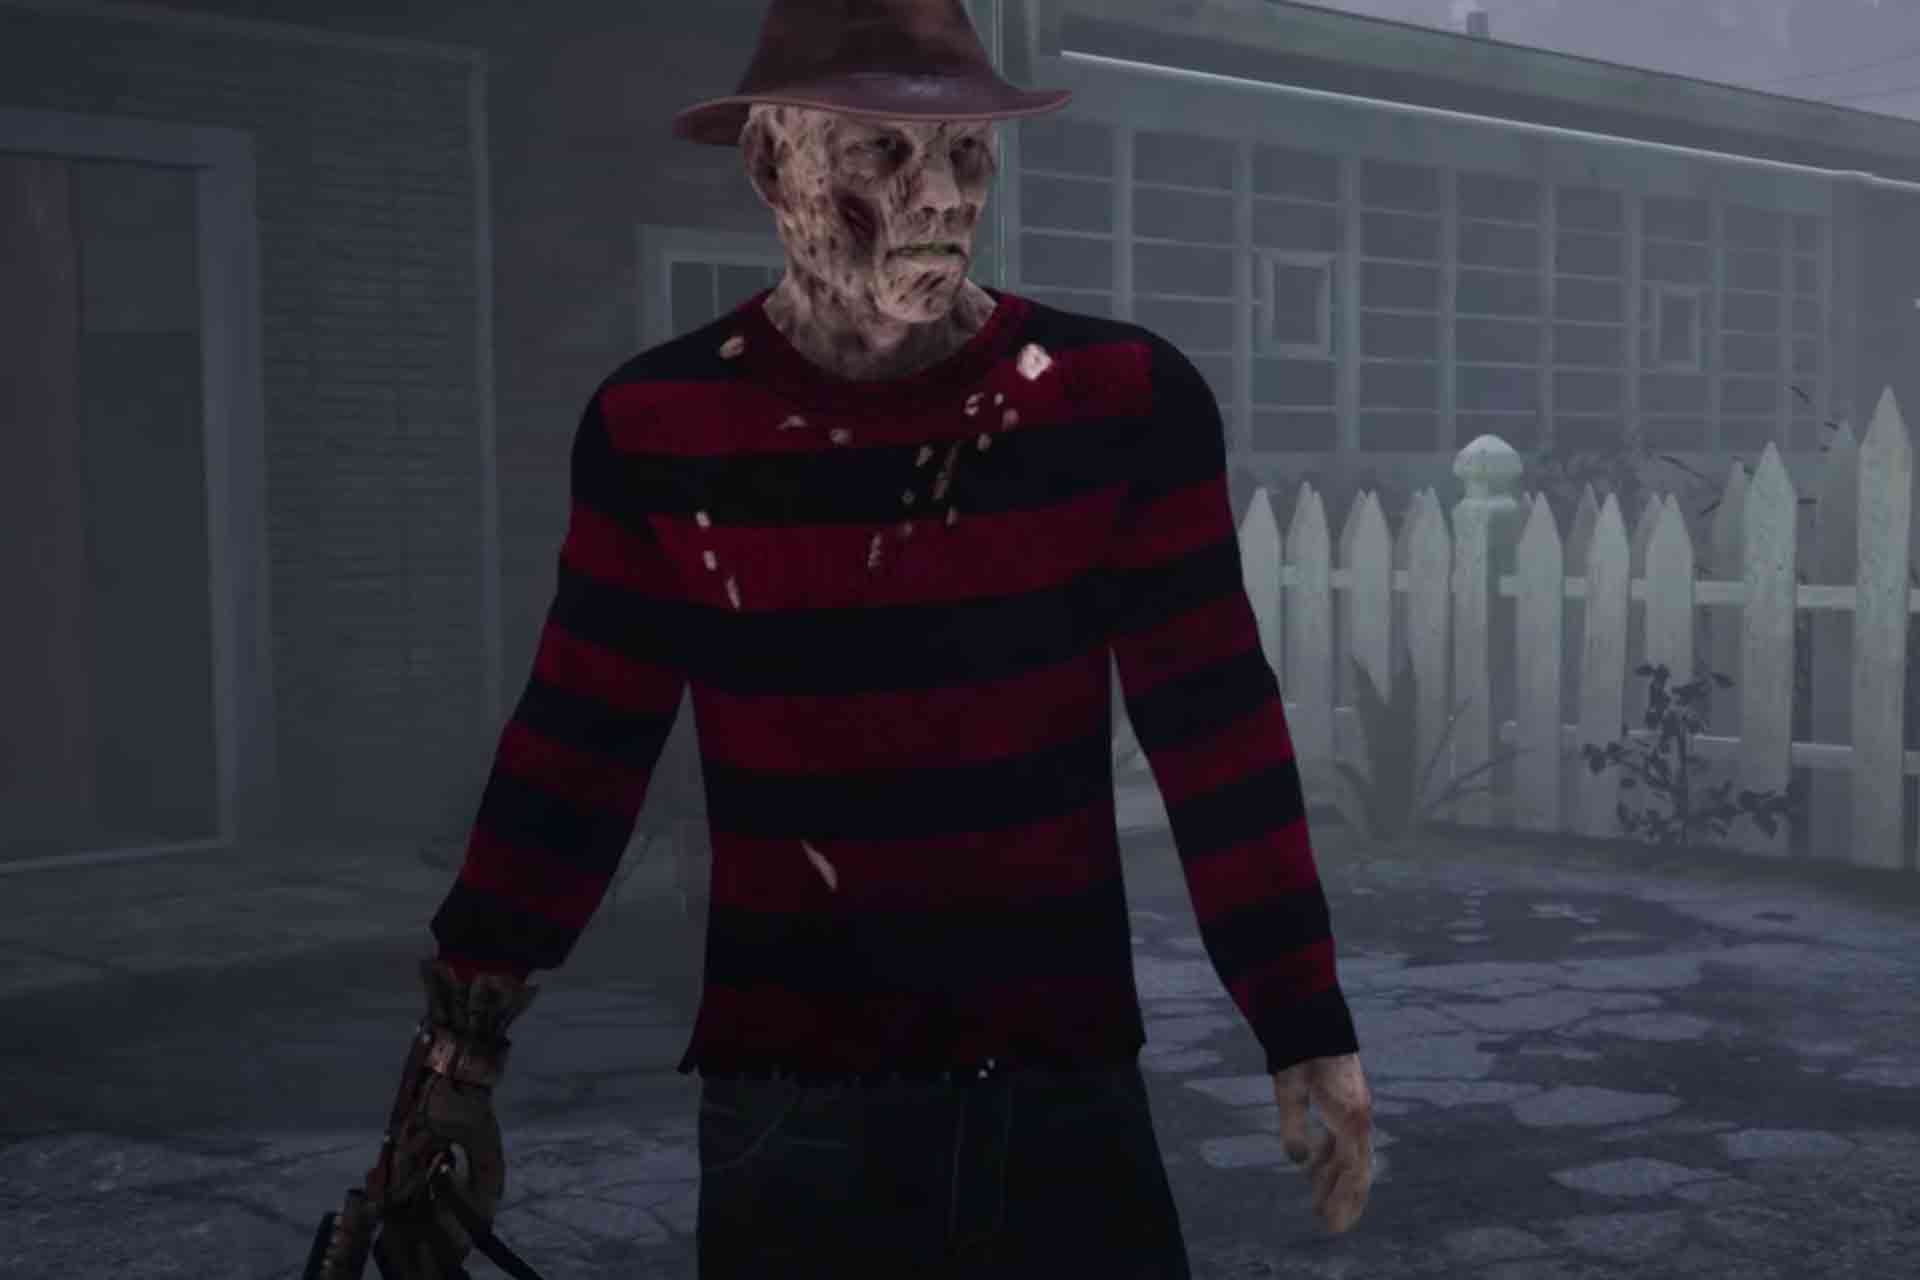 Freddy Krueger from the Nightmare on Elm Street movie series is a killer character in Dead by Daylight game.